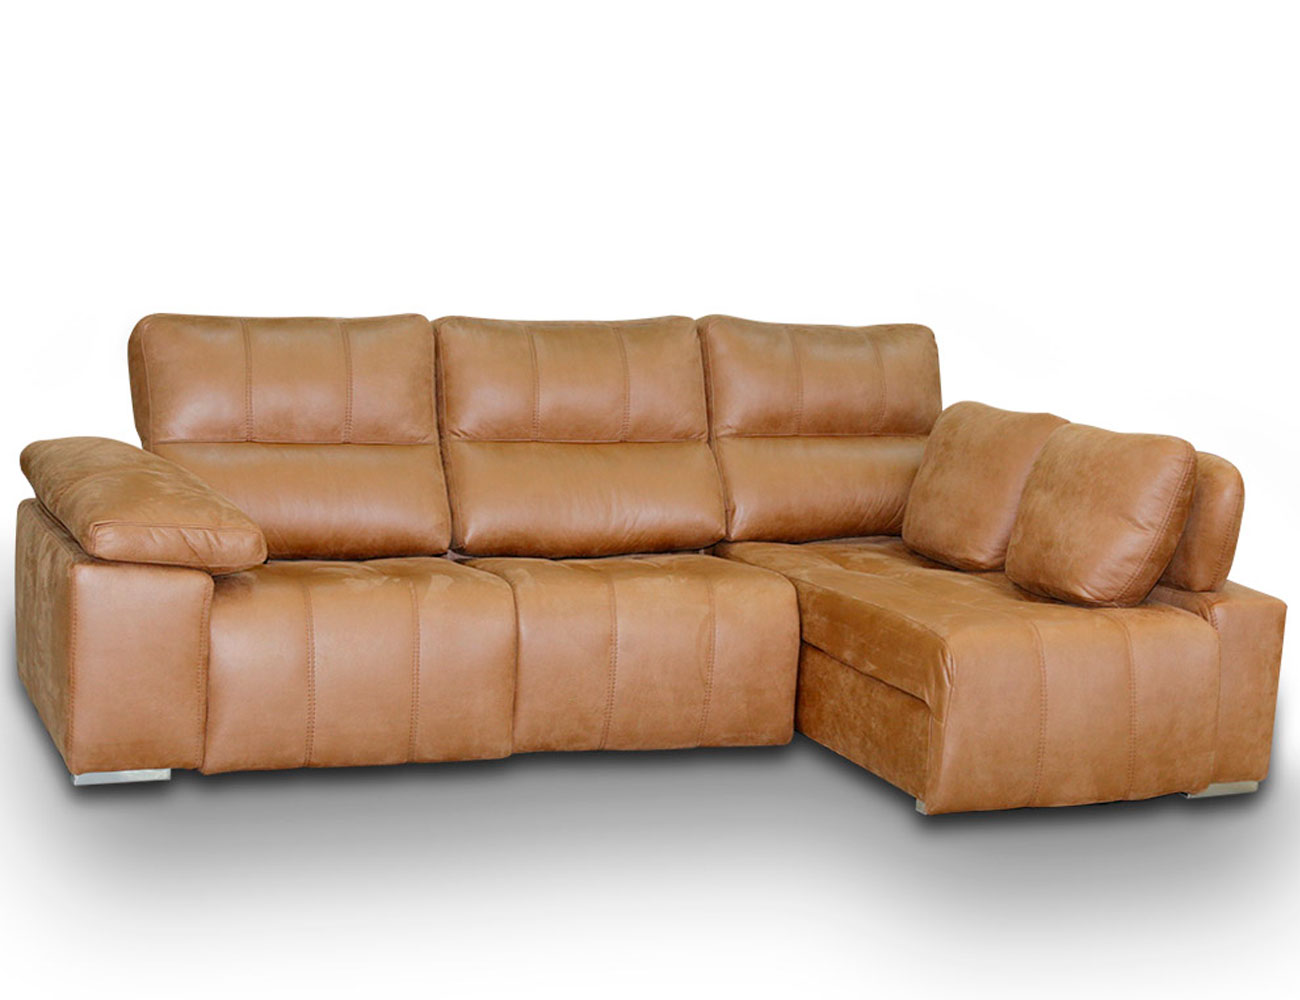 Sofa chaiselongue relax 2 motores anti manchas2